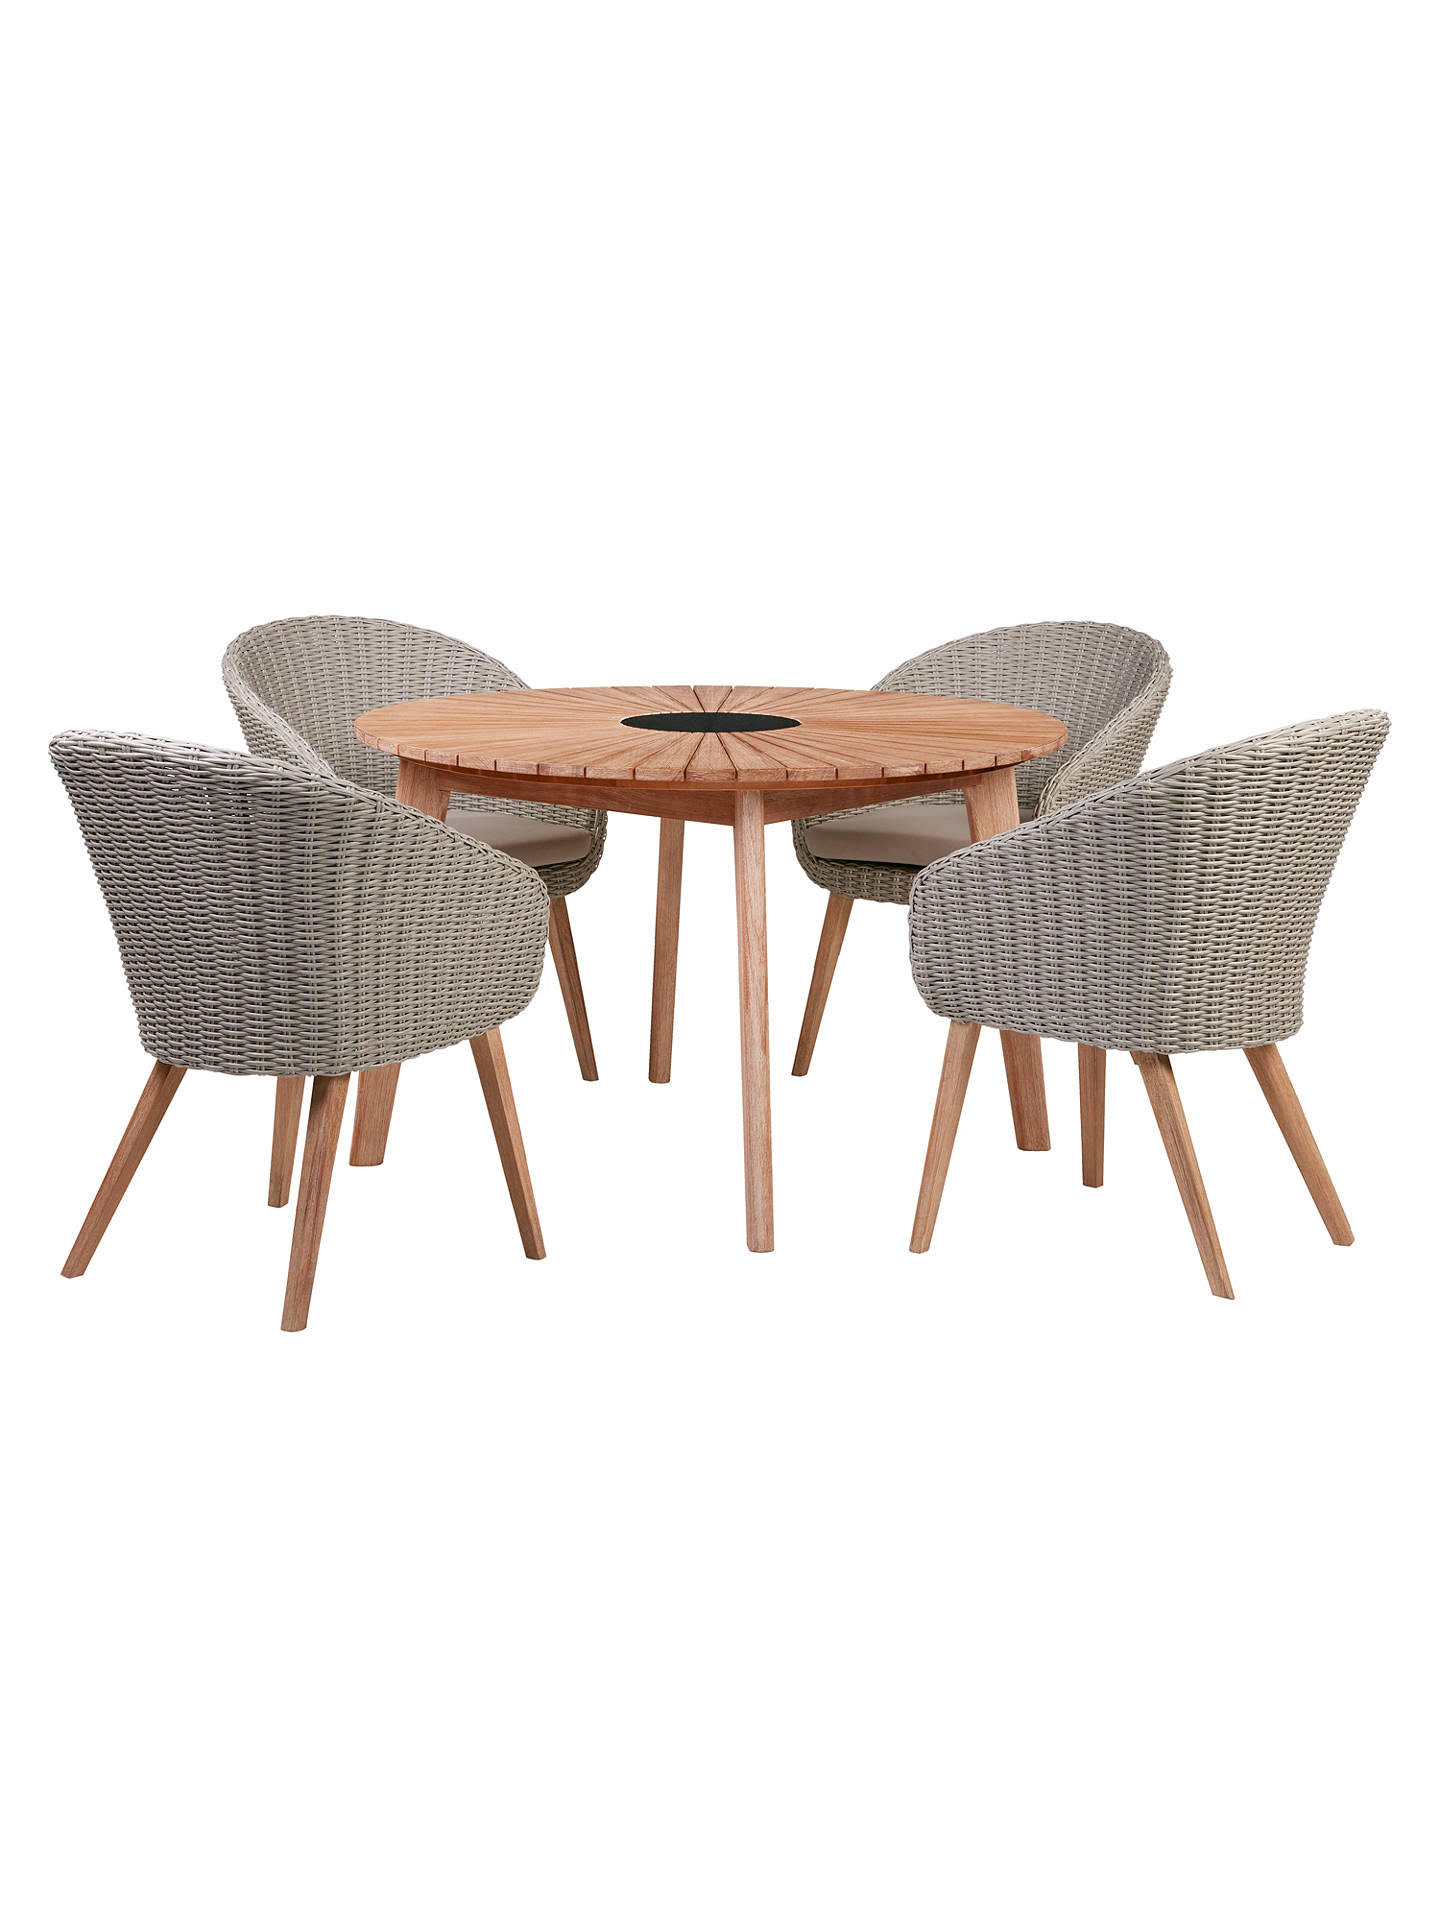 Lot 30567 - V Brand New To John Lewis Sol Four Seater Round Garden Table & Chairs ISP £999 (John Lewis) Stock